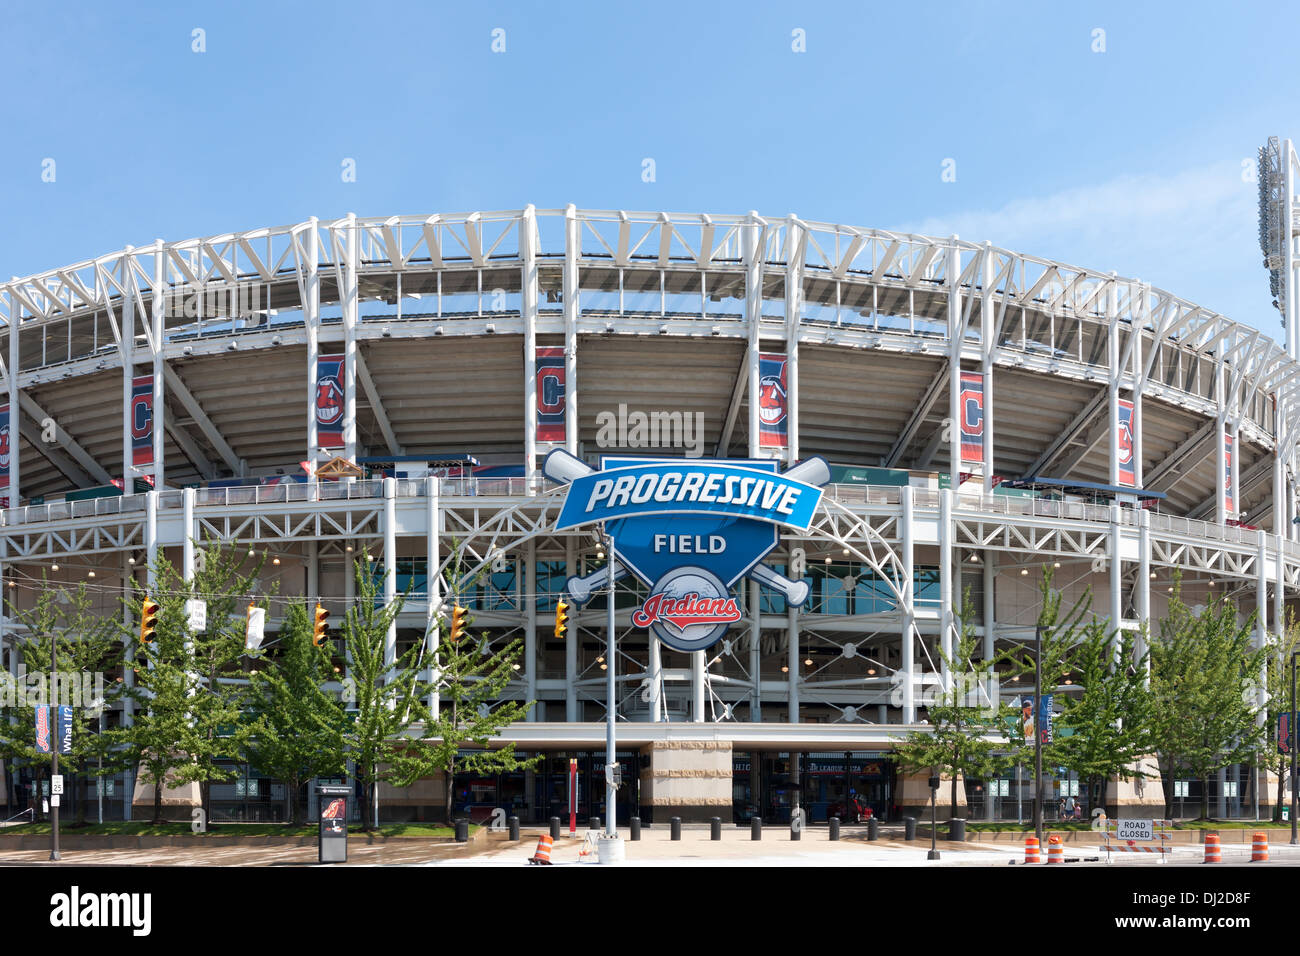 A view of Progressive Field, home of the Cleveland Indians, from Ontario Street in Cleveland, Ohio. - Stock Image